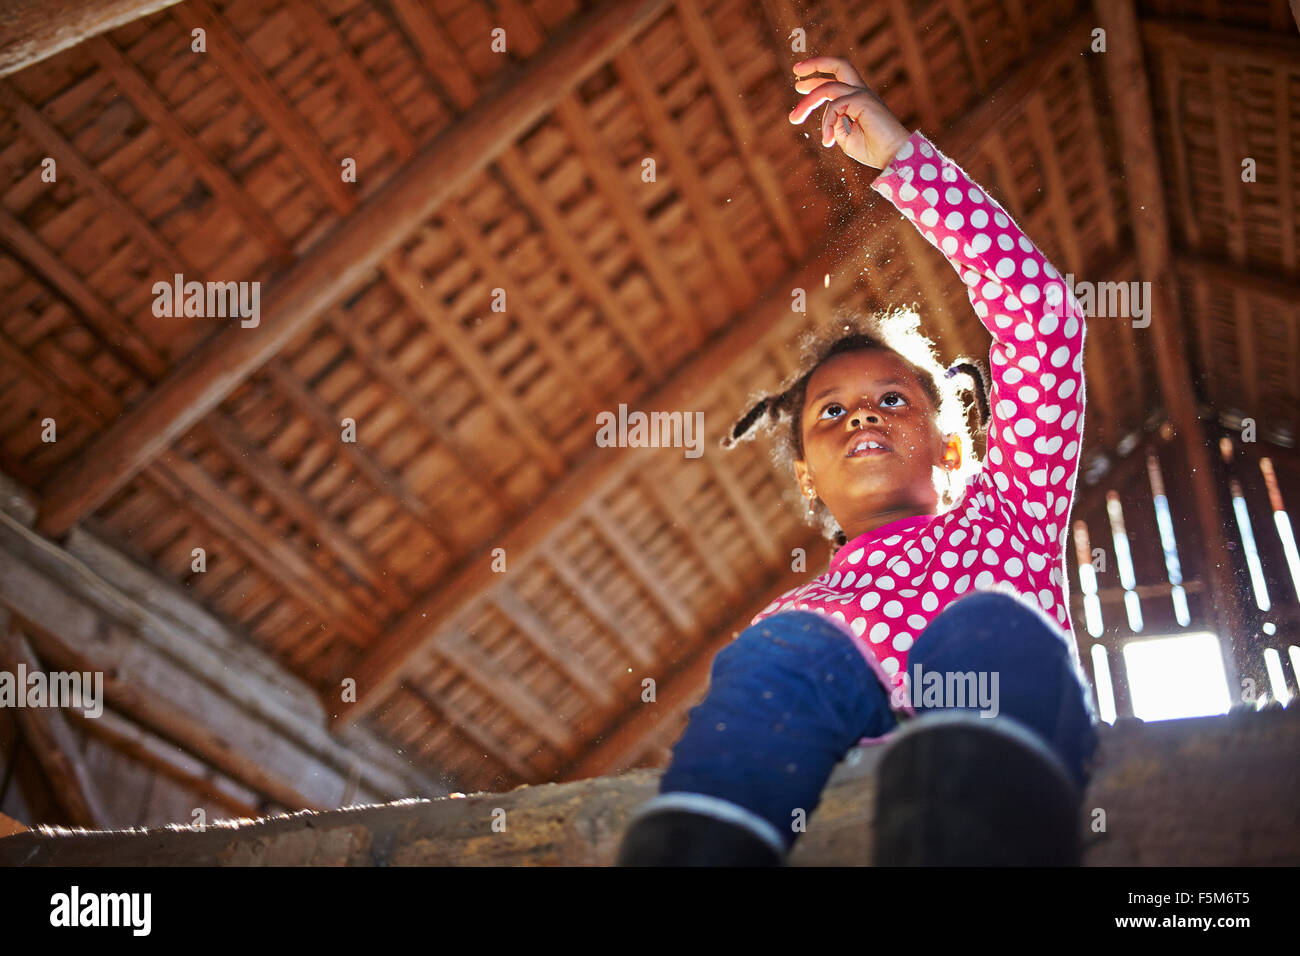 Sweden, Vastra Gotaland, Gullspang, Runnas, Girl (6-7) sitting in barn - Stock Image